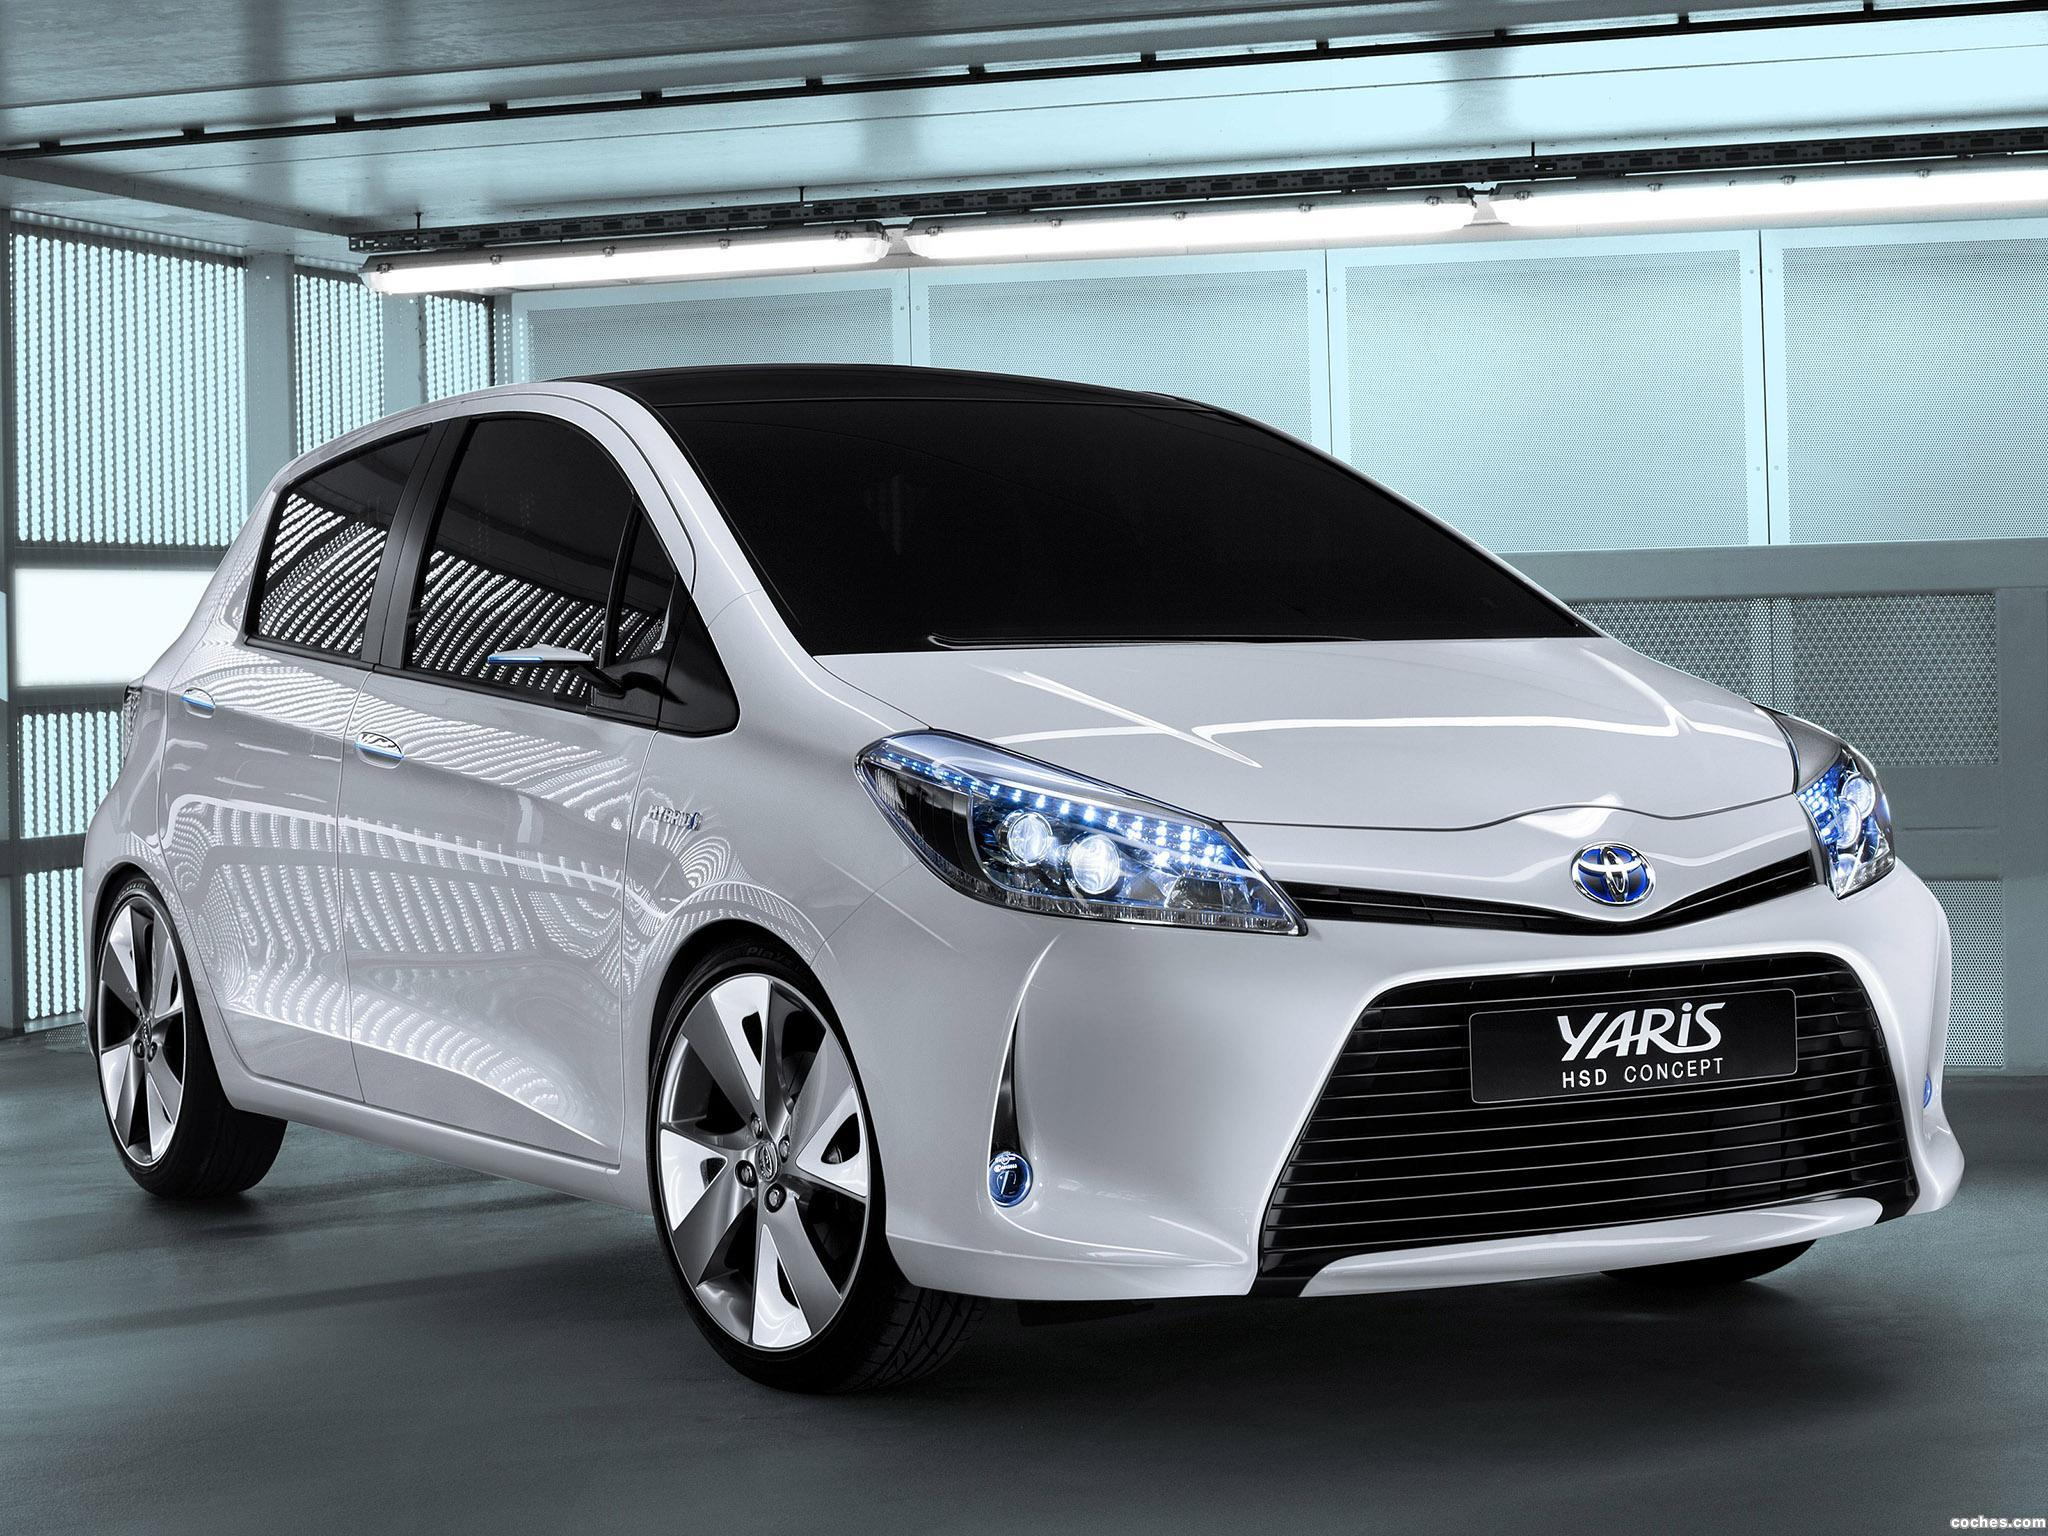 fotos de toyota yaris hsd concept 2011 foto 4. Black Bedroom Furniture Sets. Home Design Ideas